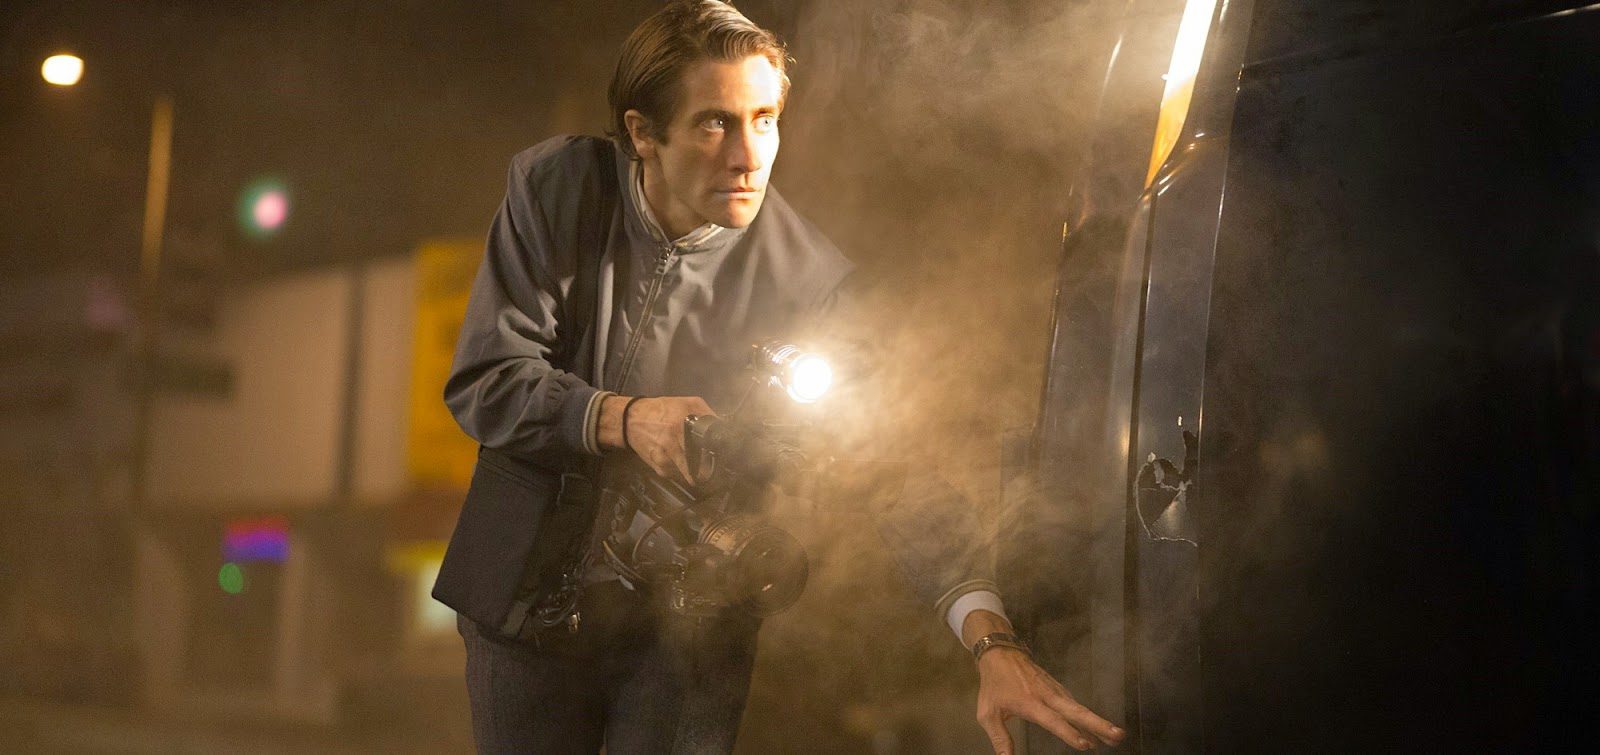 Jake Gyllenhaal é um repórter criminal obsessivo no trailer do thriller Nightcrawler